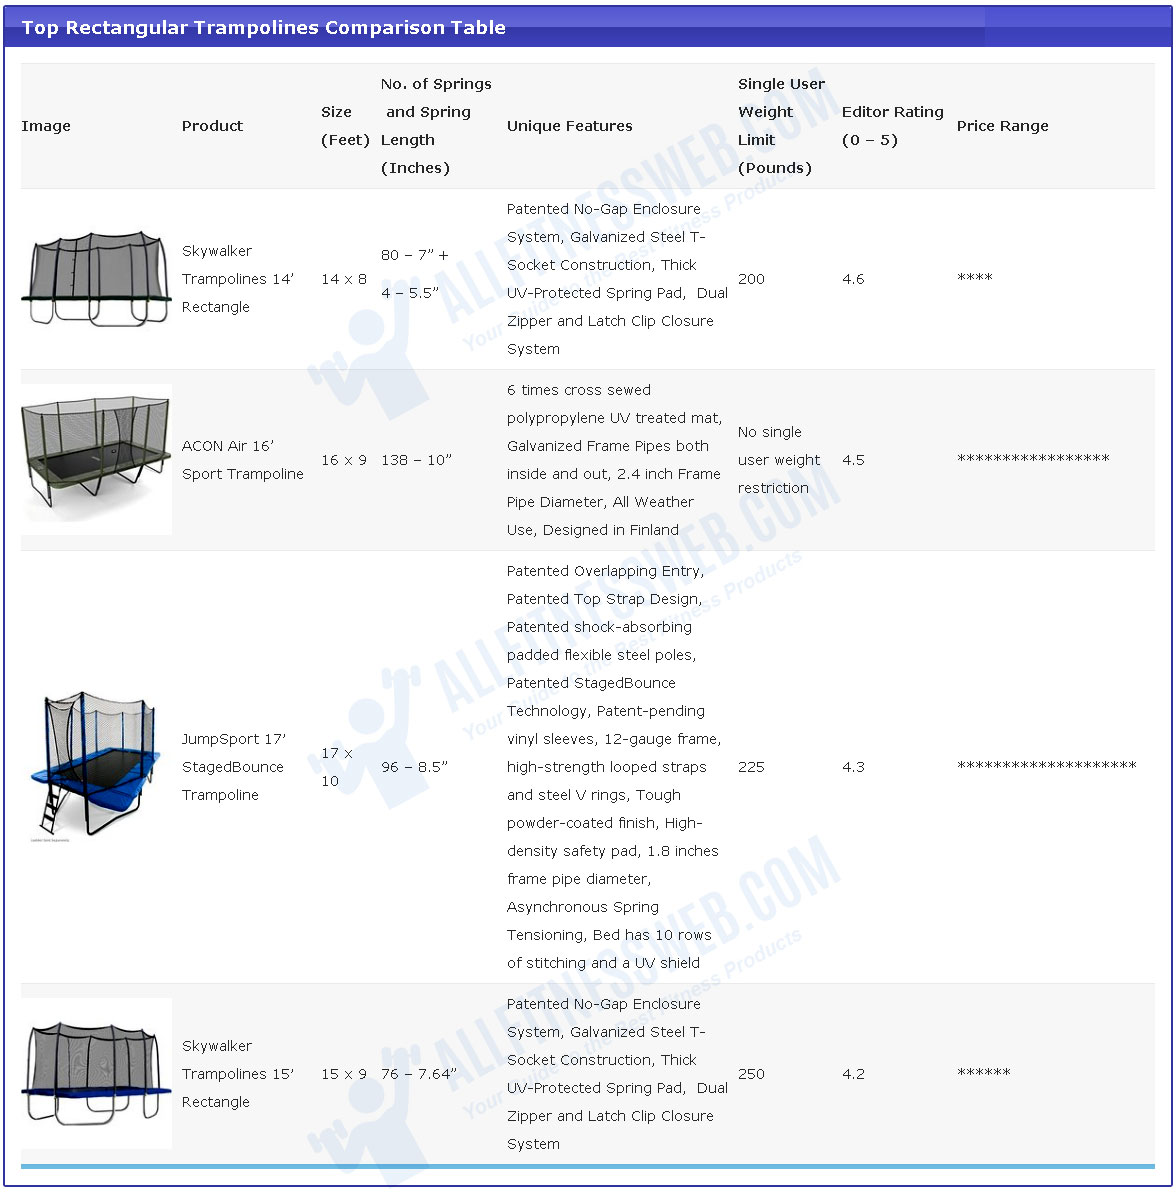 Best rectangle trampolines comparison table